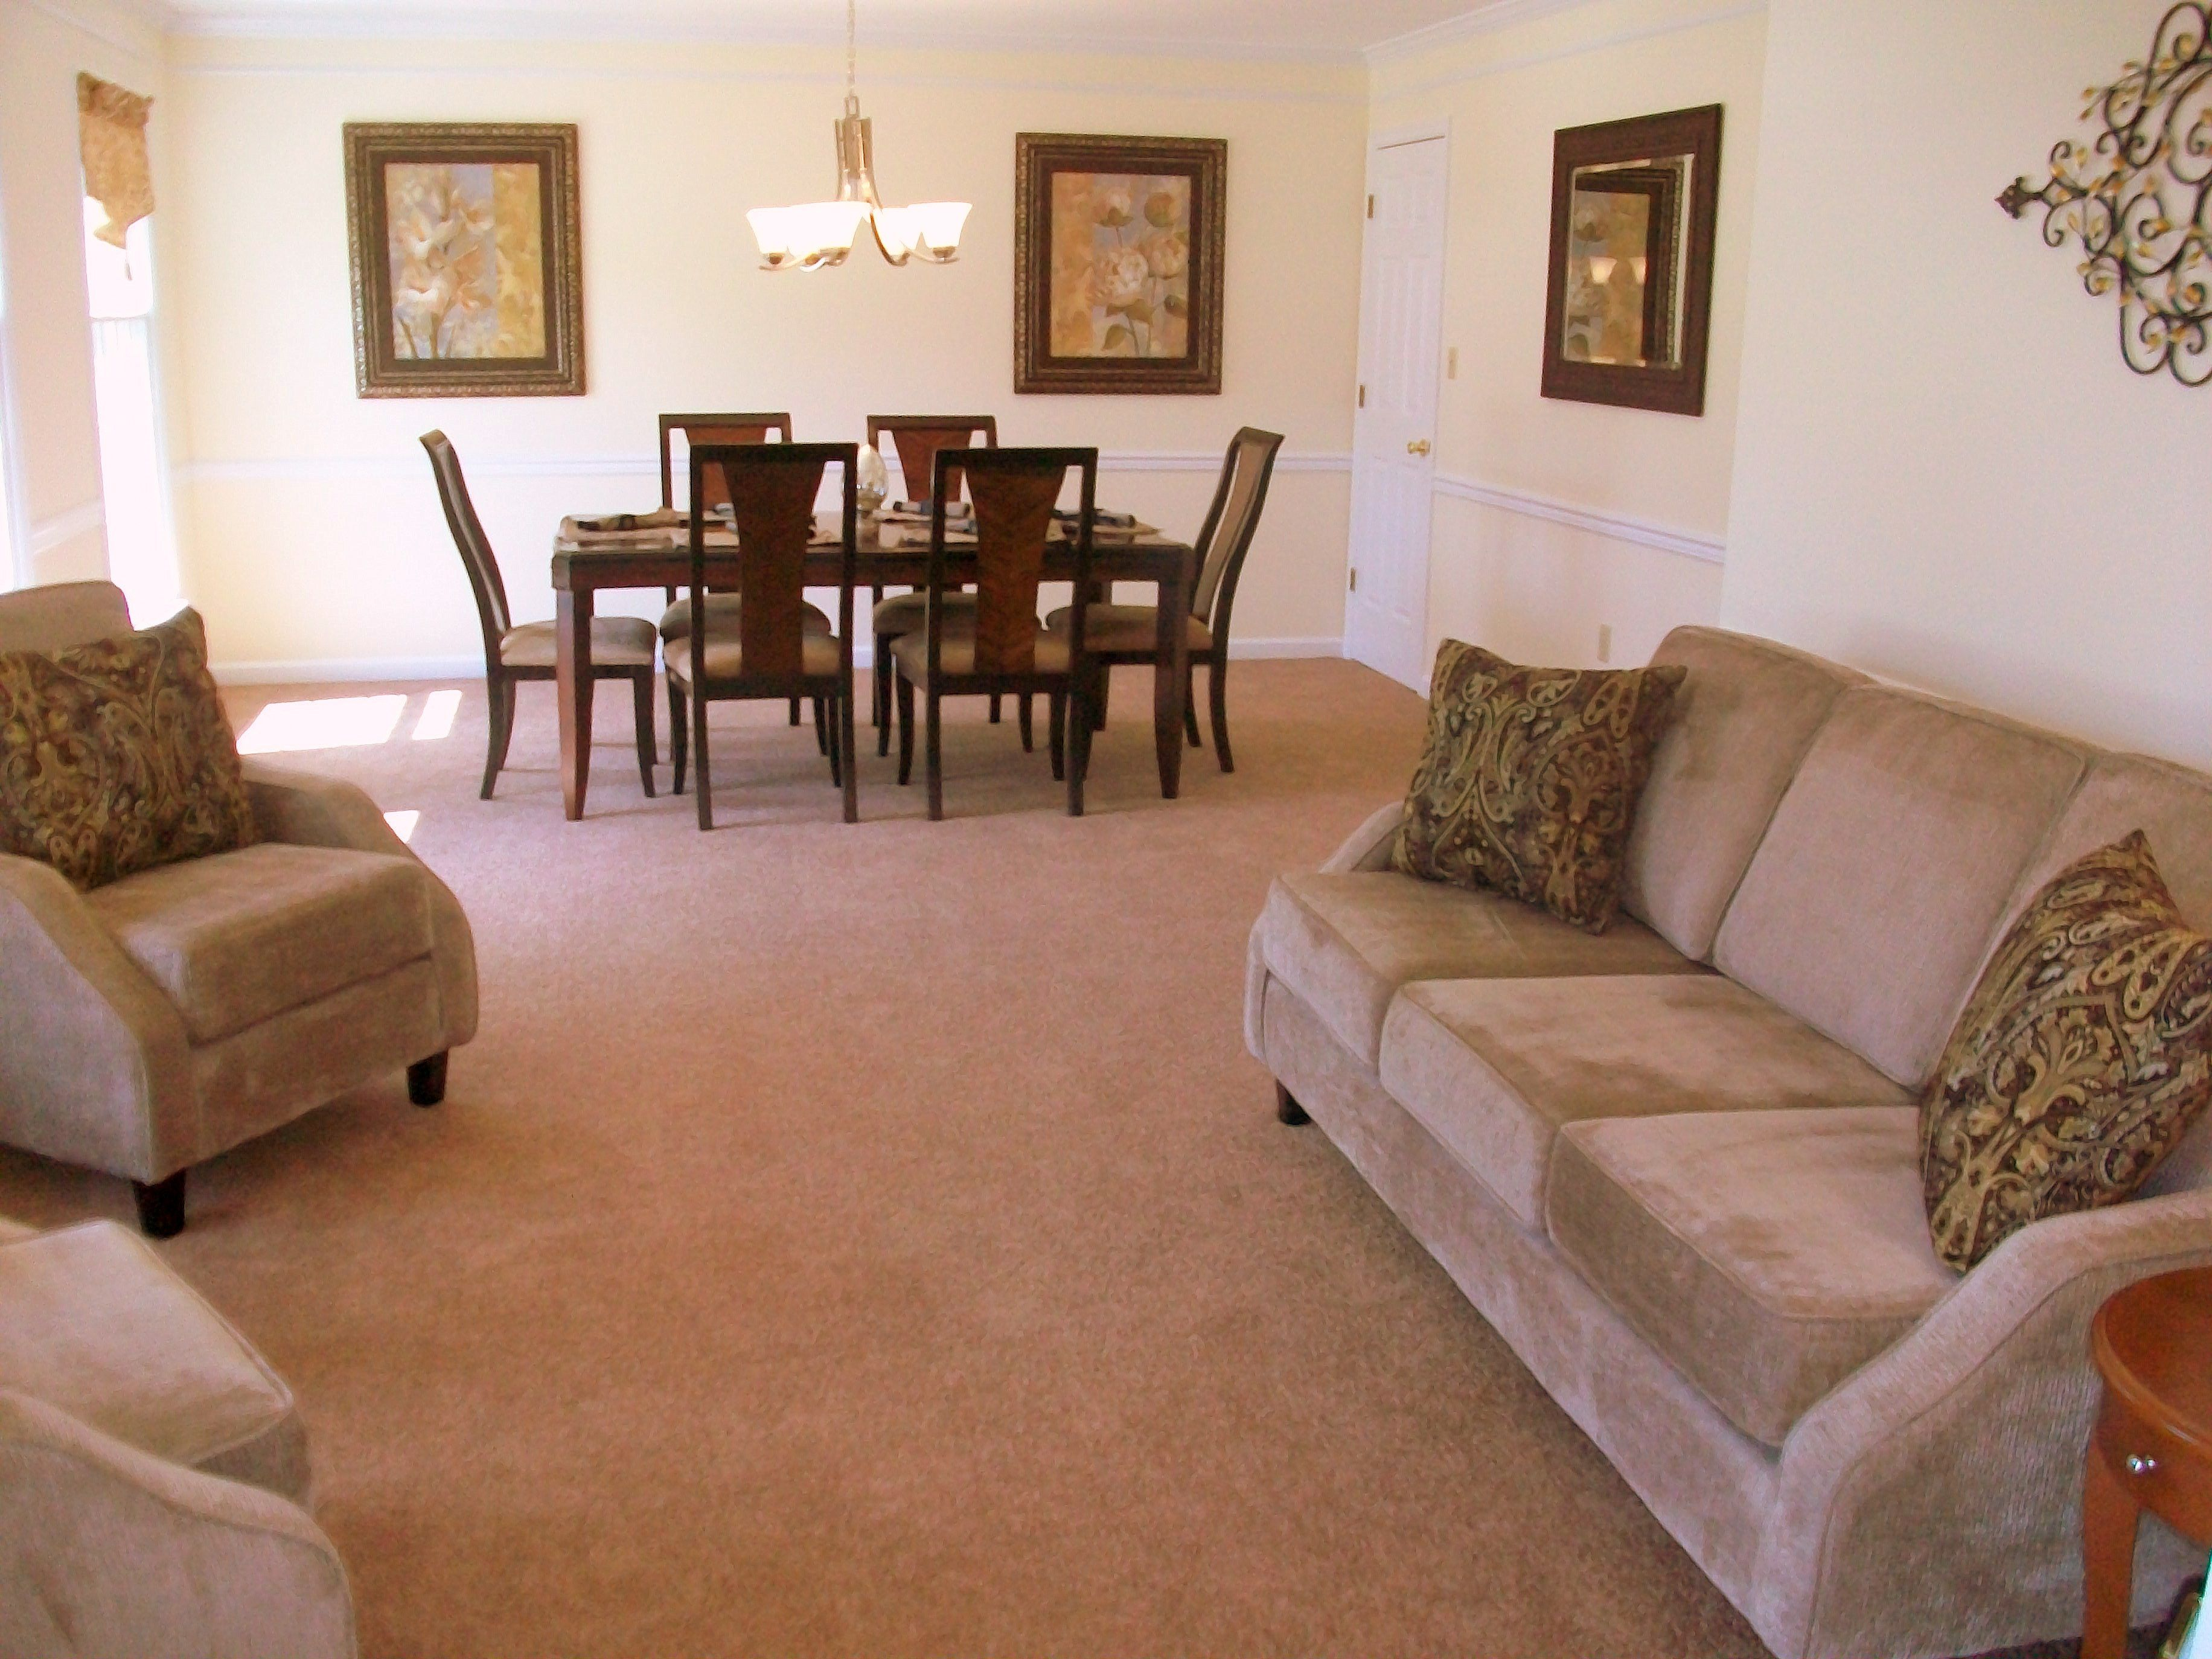 Formal sitting area and dining room